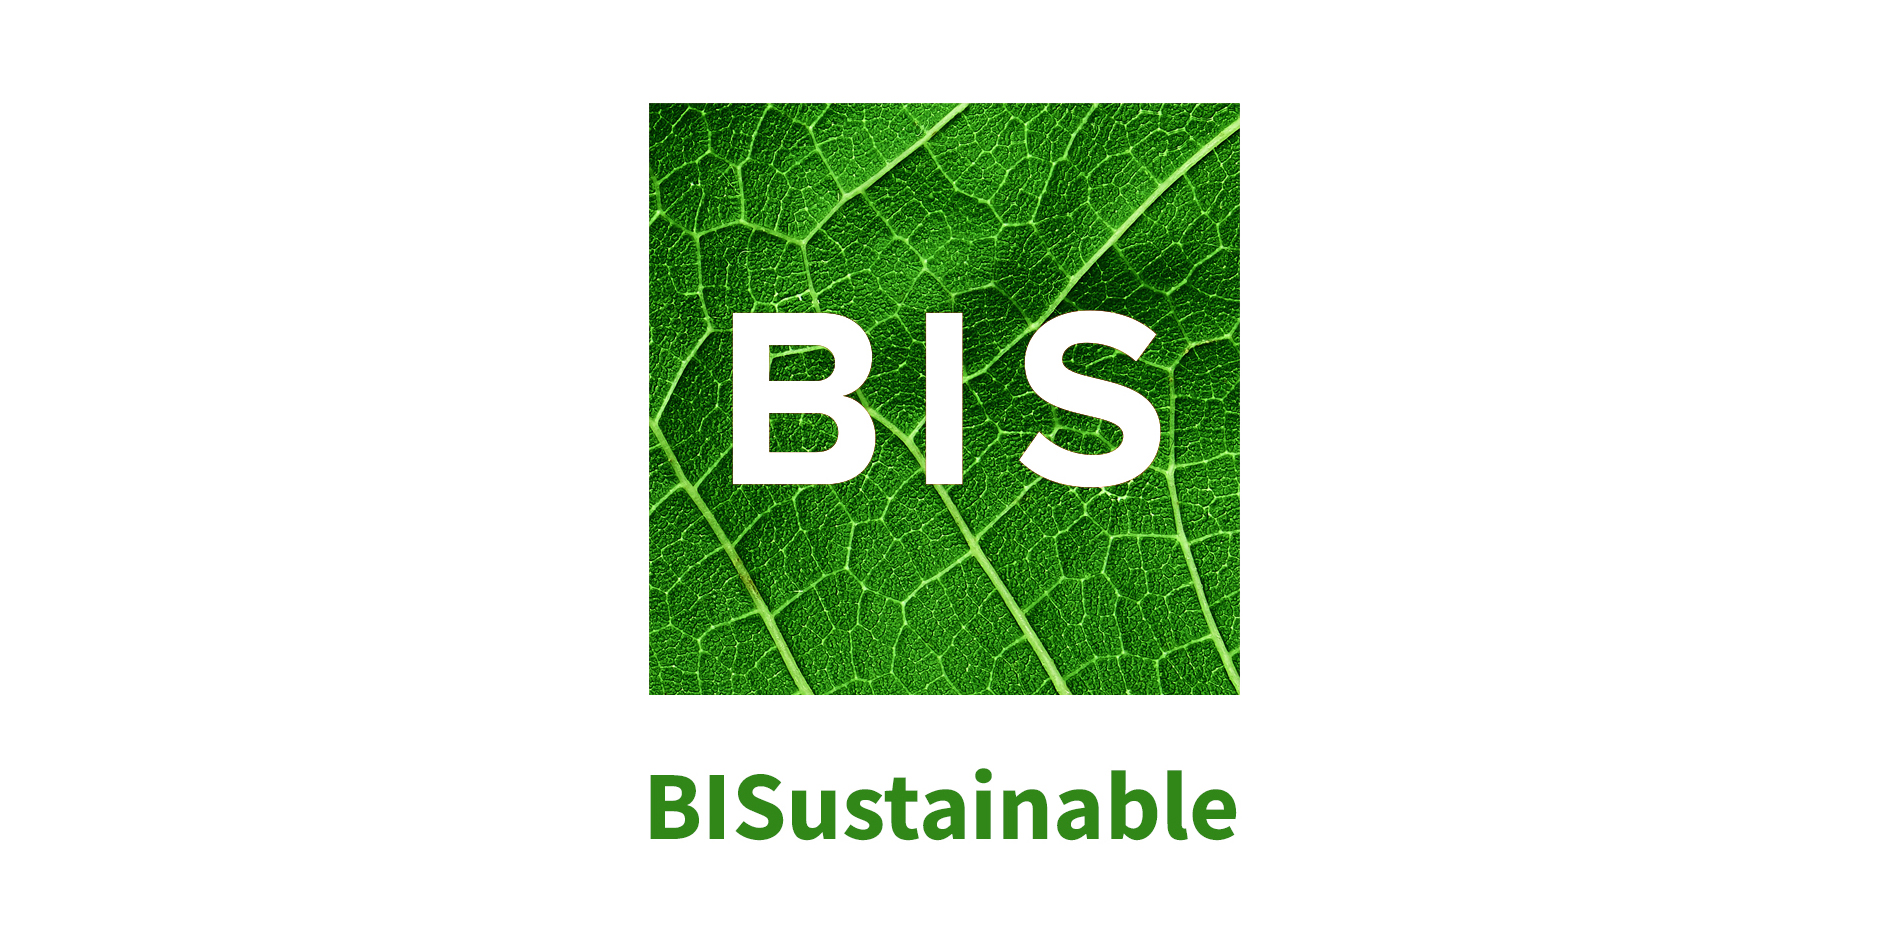 BISUSTAINABLE